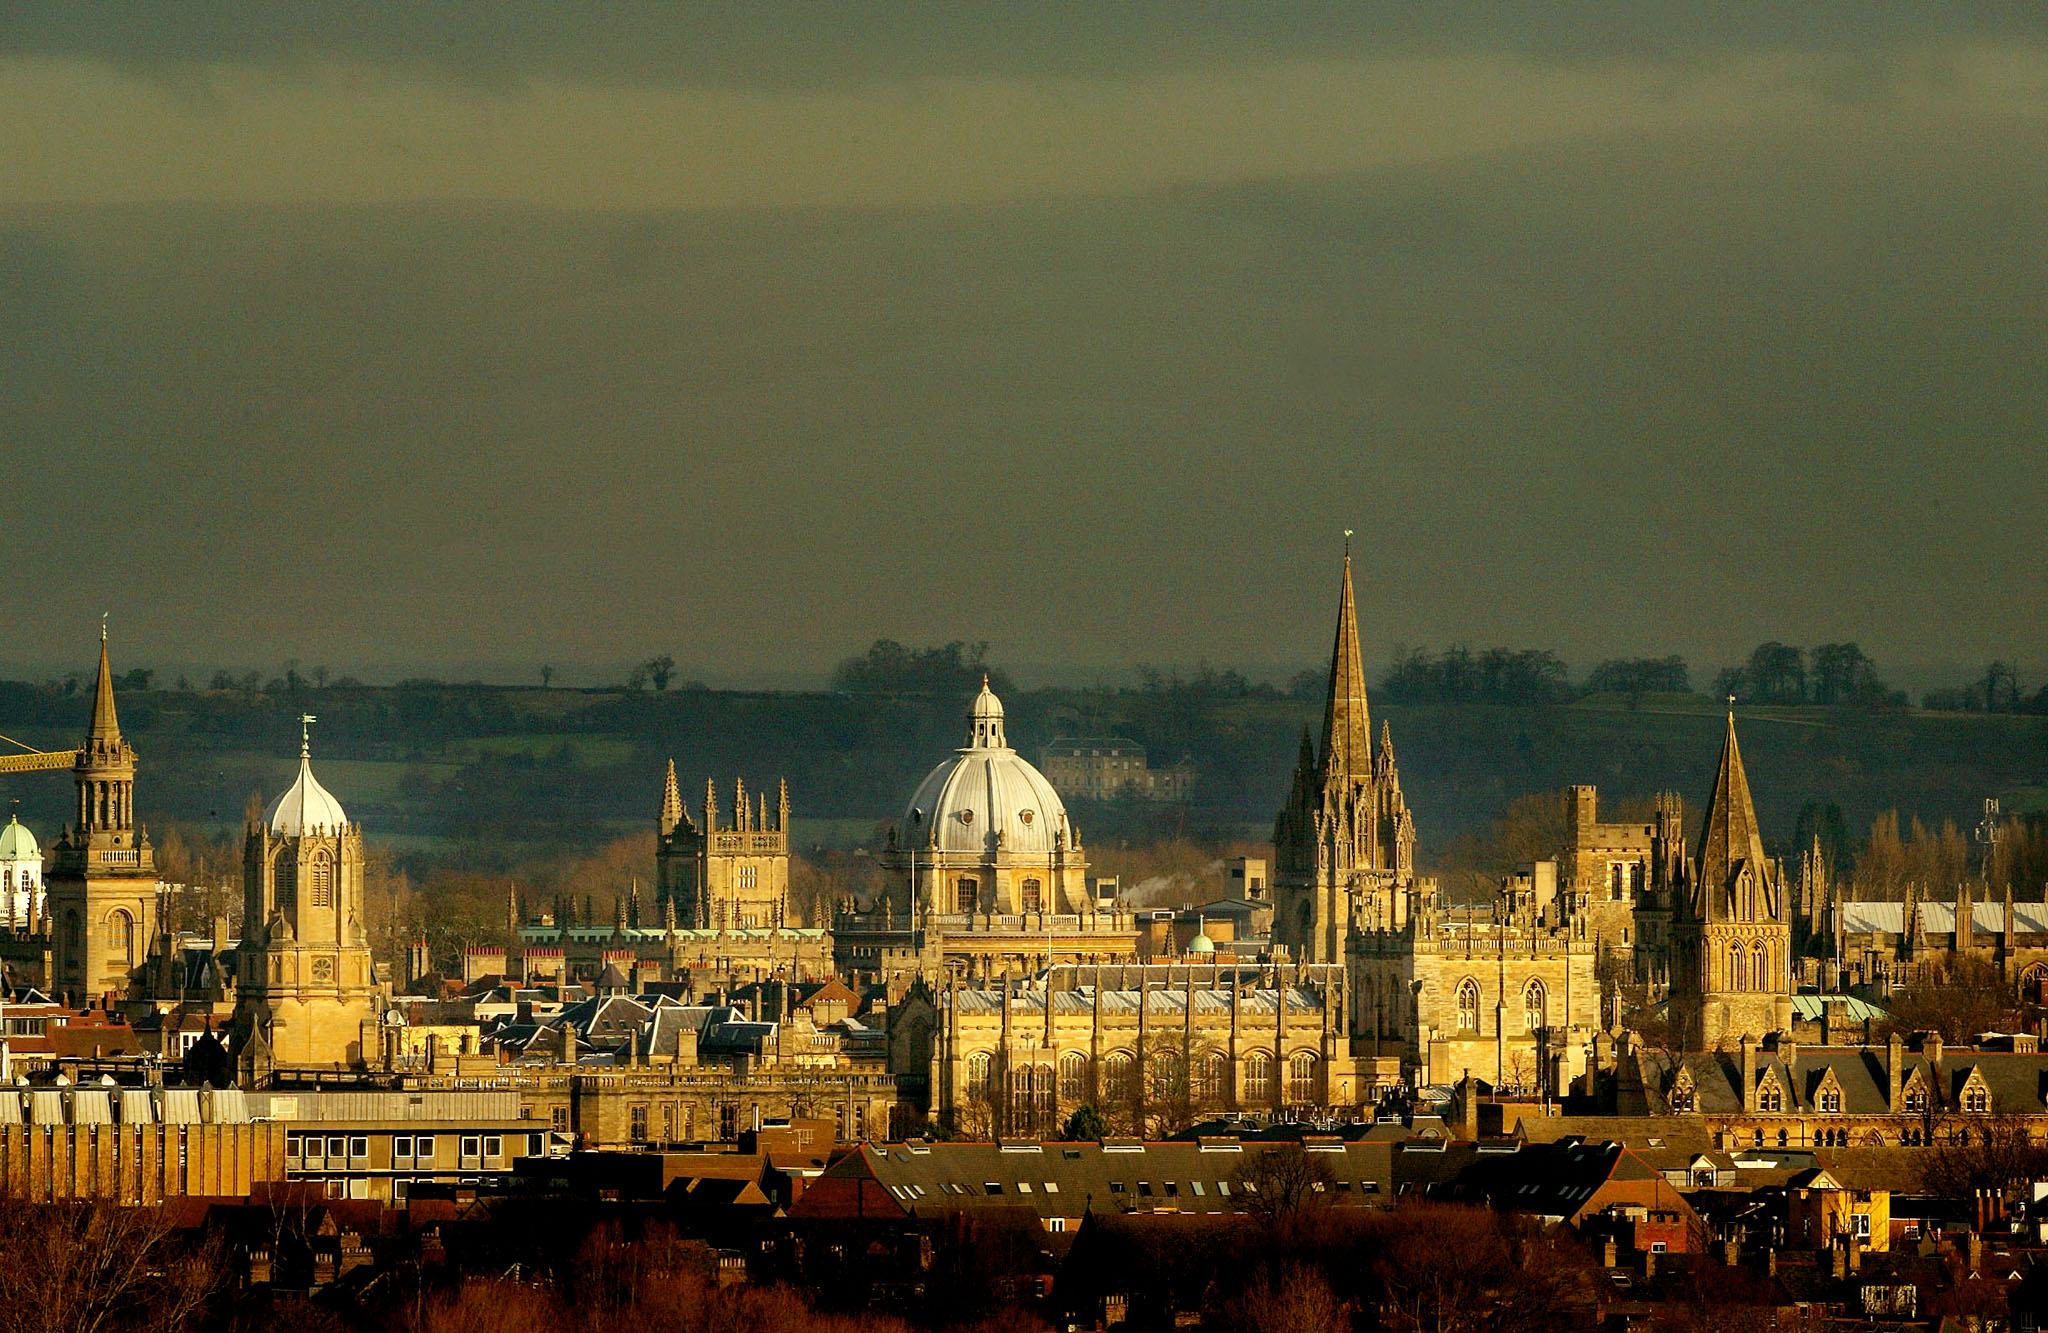 The rooftops of the university city of Oxford.